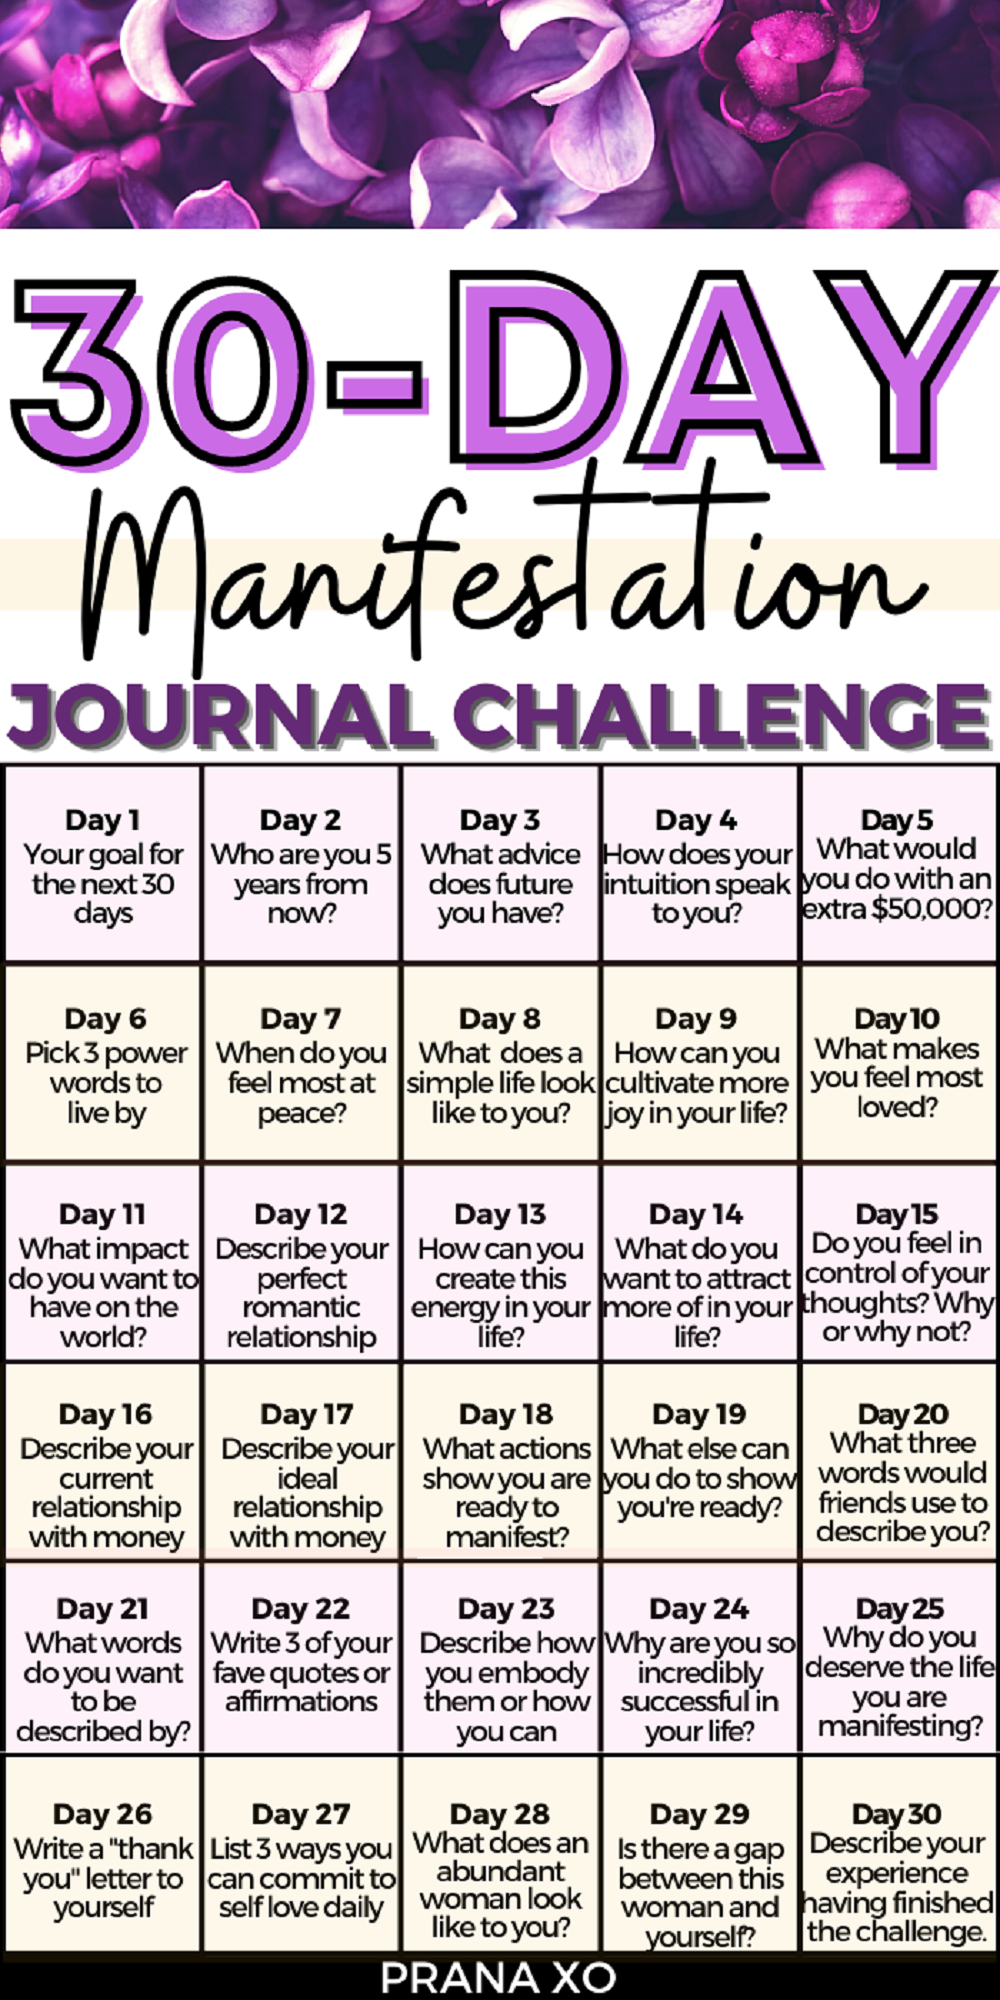 30-Day Manifestation Journal Challenge (Law of Attraction Journaling Prompts for Manifesting)